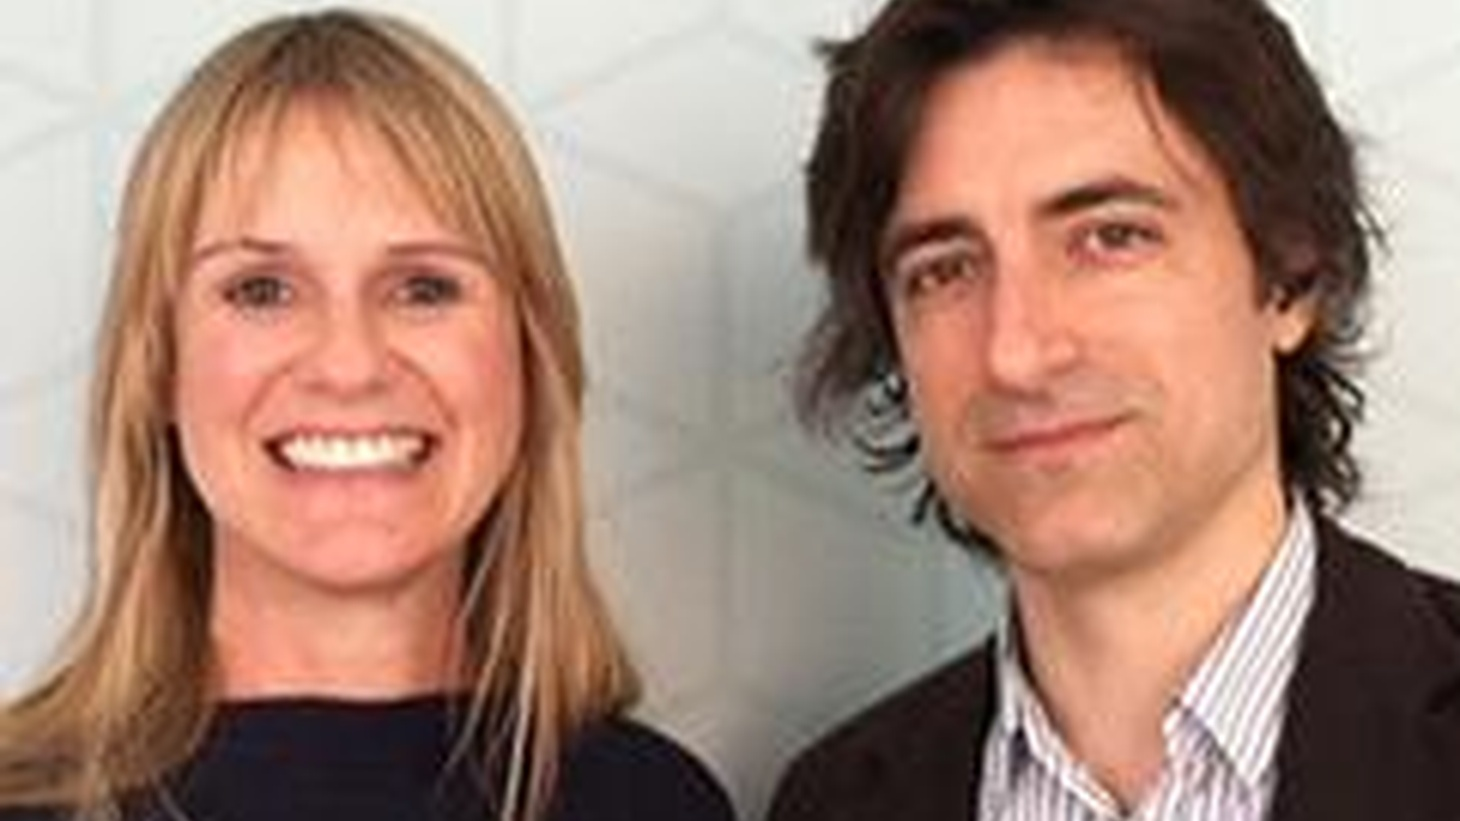 Indie filmmaker Noah Baumbach makes very personal movies and music planted some early seeds of visual inspiration.